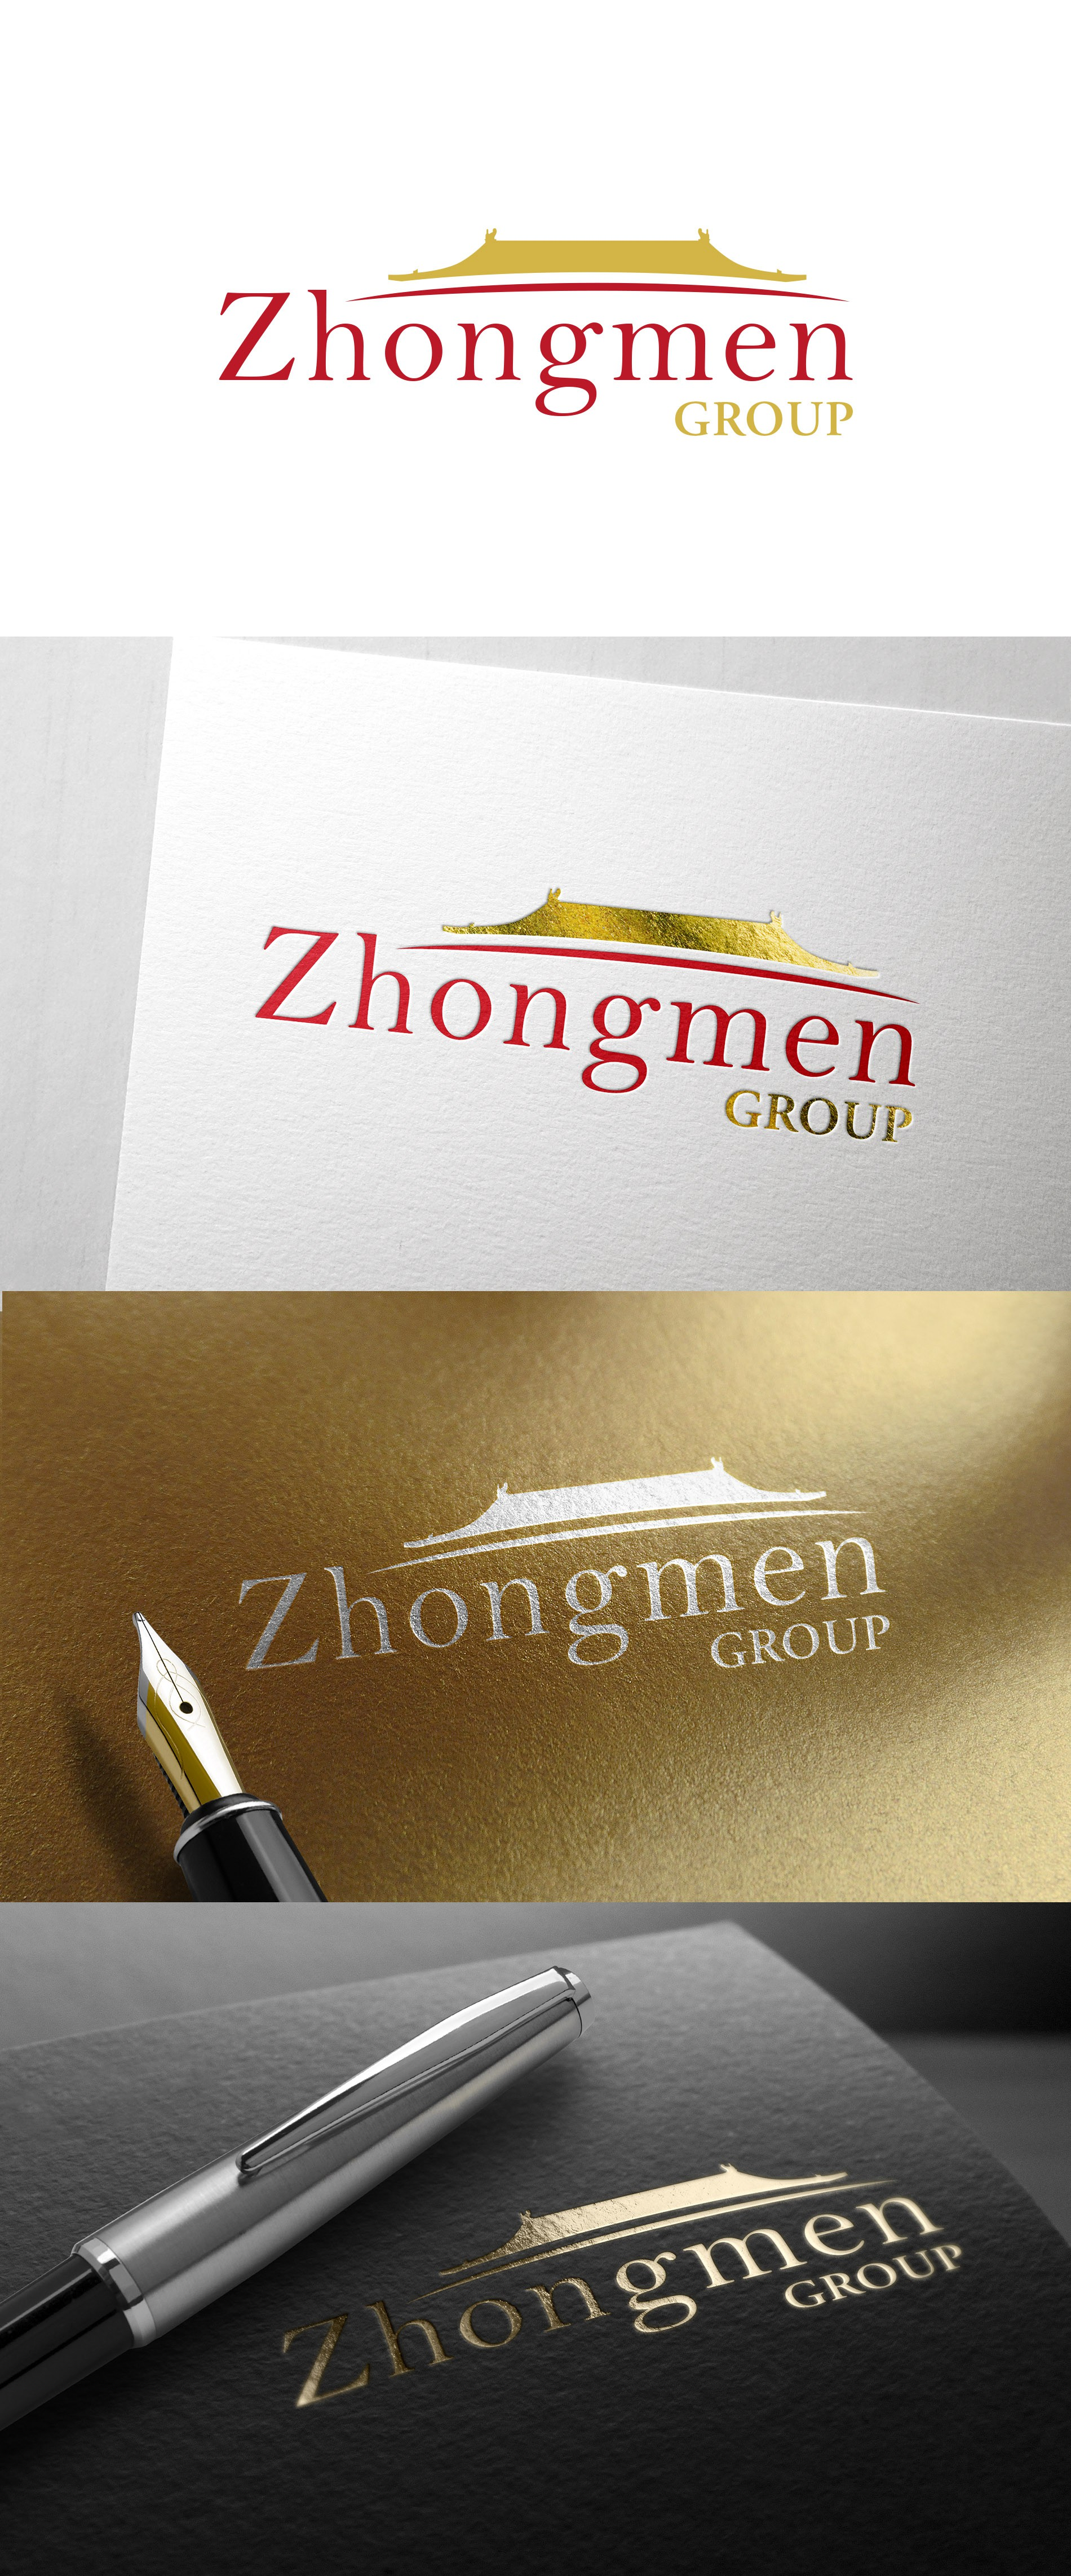 Brand a China-focused investment bank for Zhongmen Group